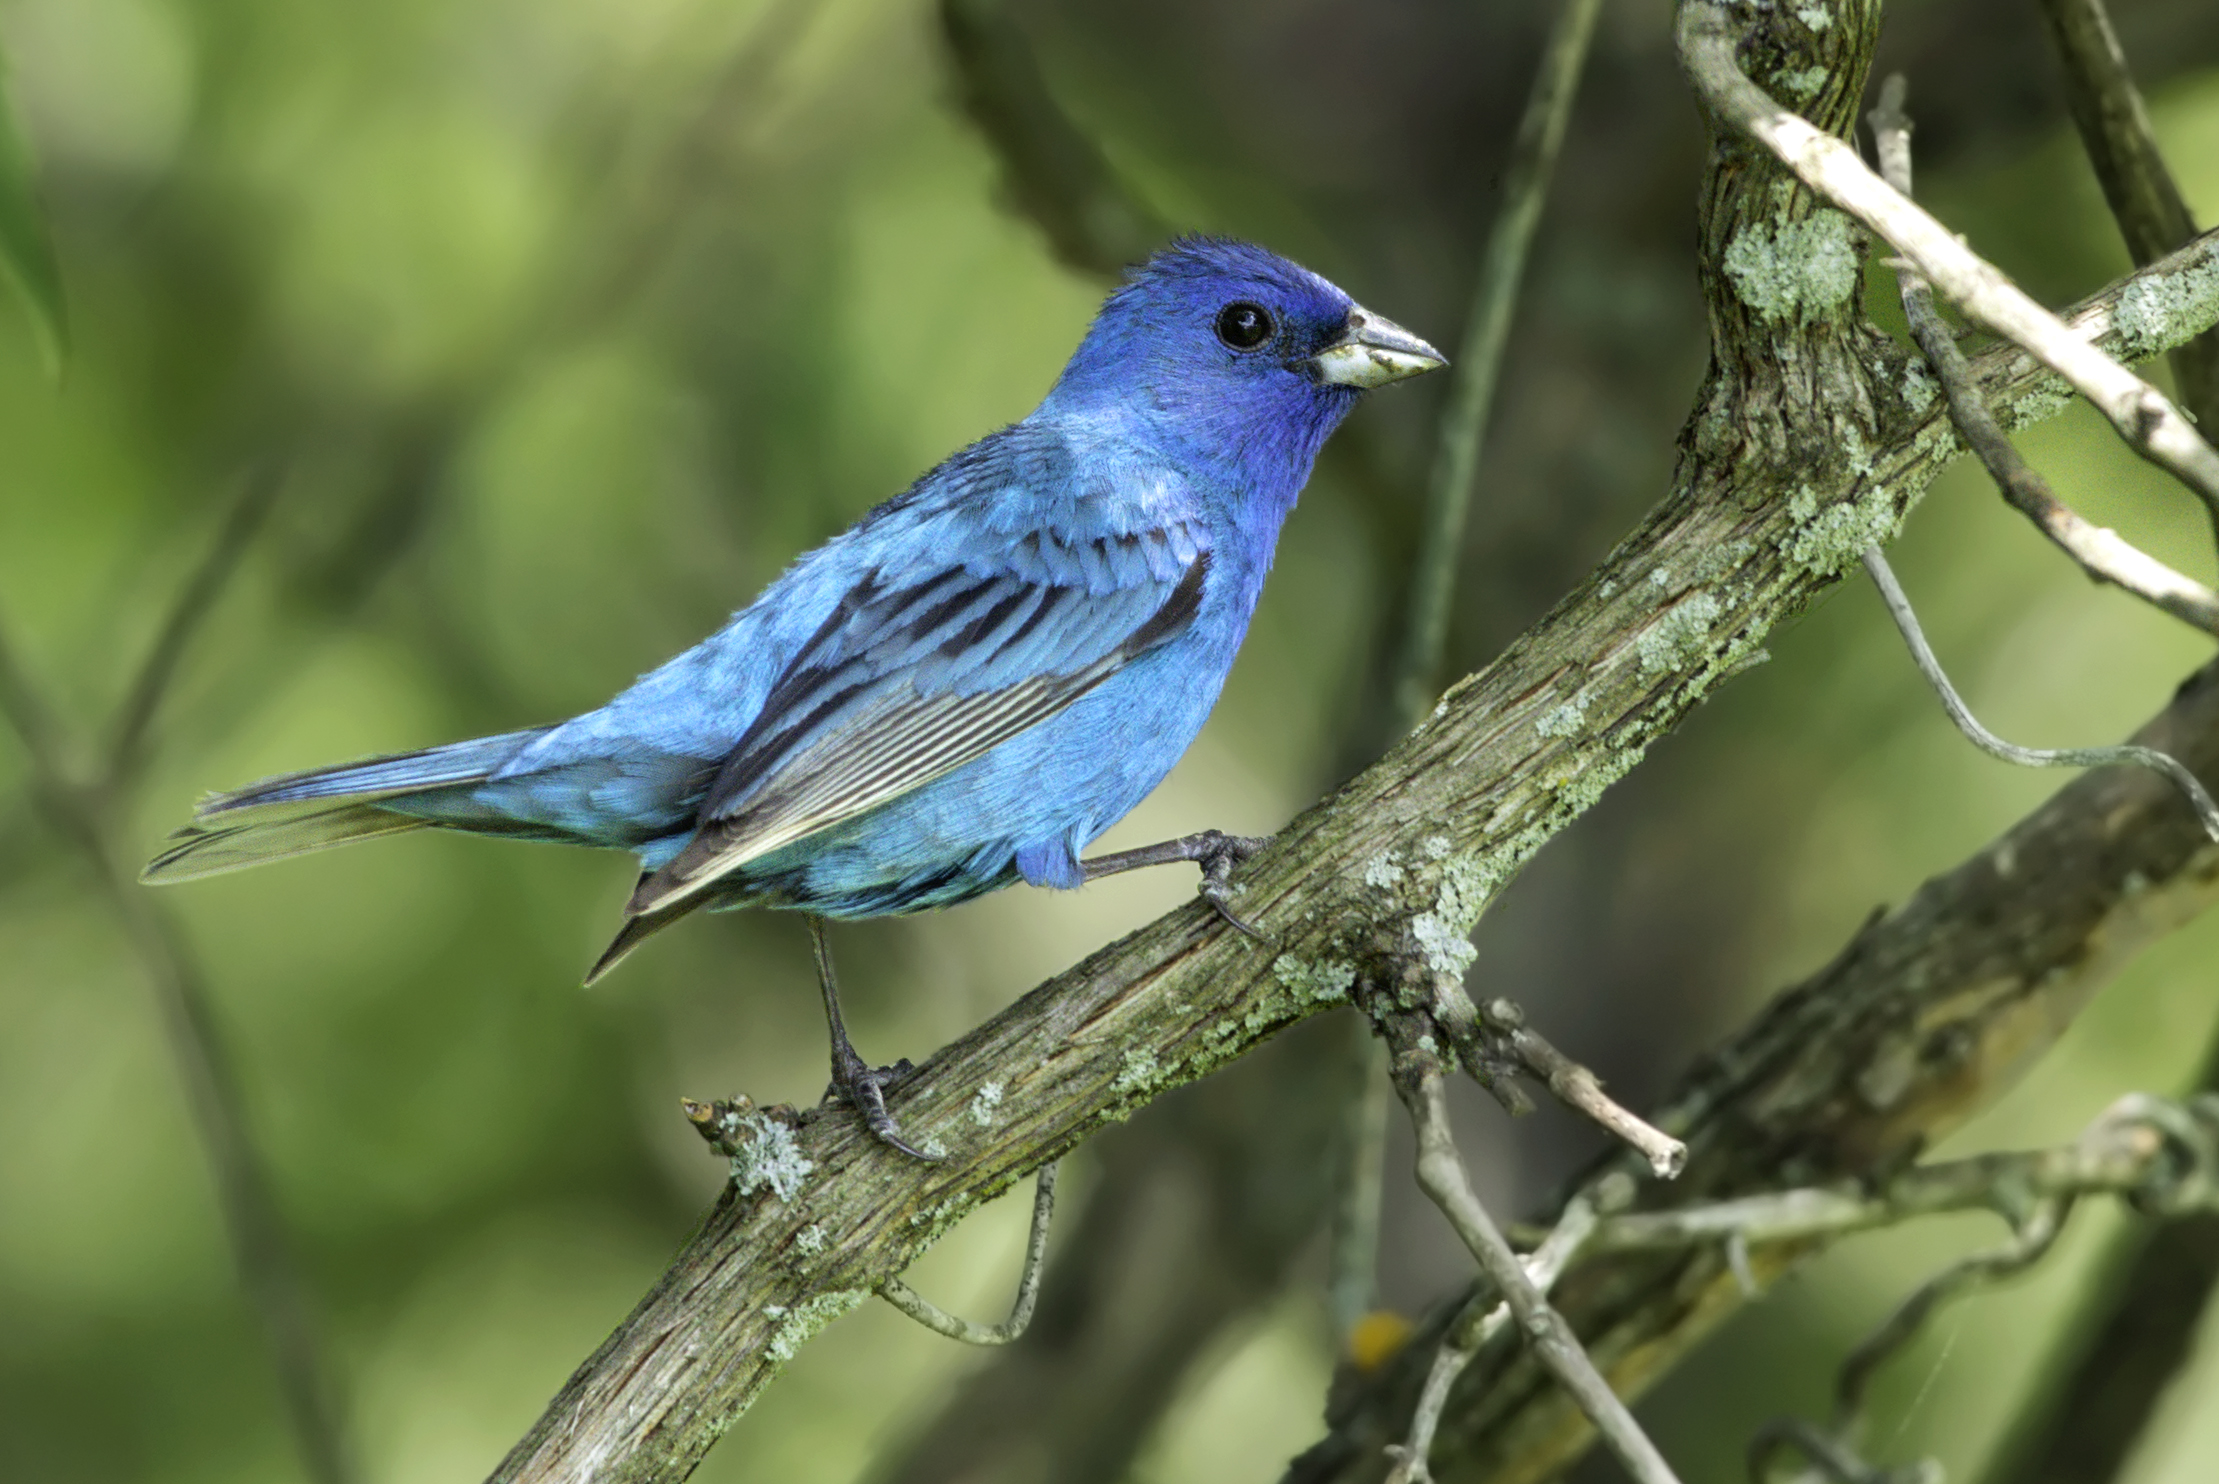 """- Indigo Bunting (Passerina cyanea)Indigo Buntings live in shrubby areas and on the edges of woodlands. They eat seeds, insects, and arachnids. Indigo Buntings have a wingspan of 7.5-8.7 in. and weigh about 0.4-0.6 oz. When migrating, they use the stars to navigate. Their common song is """"What? What? Where? Where? See it! See it!"""" They are protected on the US Migratory Bird lists.Photo Credits: Kelly Colgan Azar"""